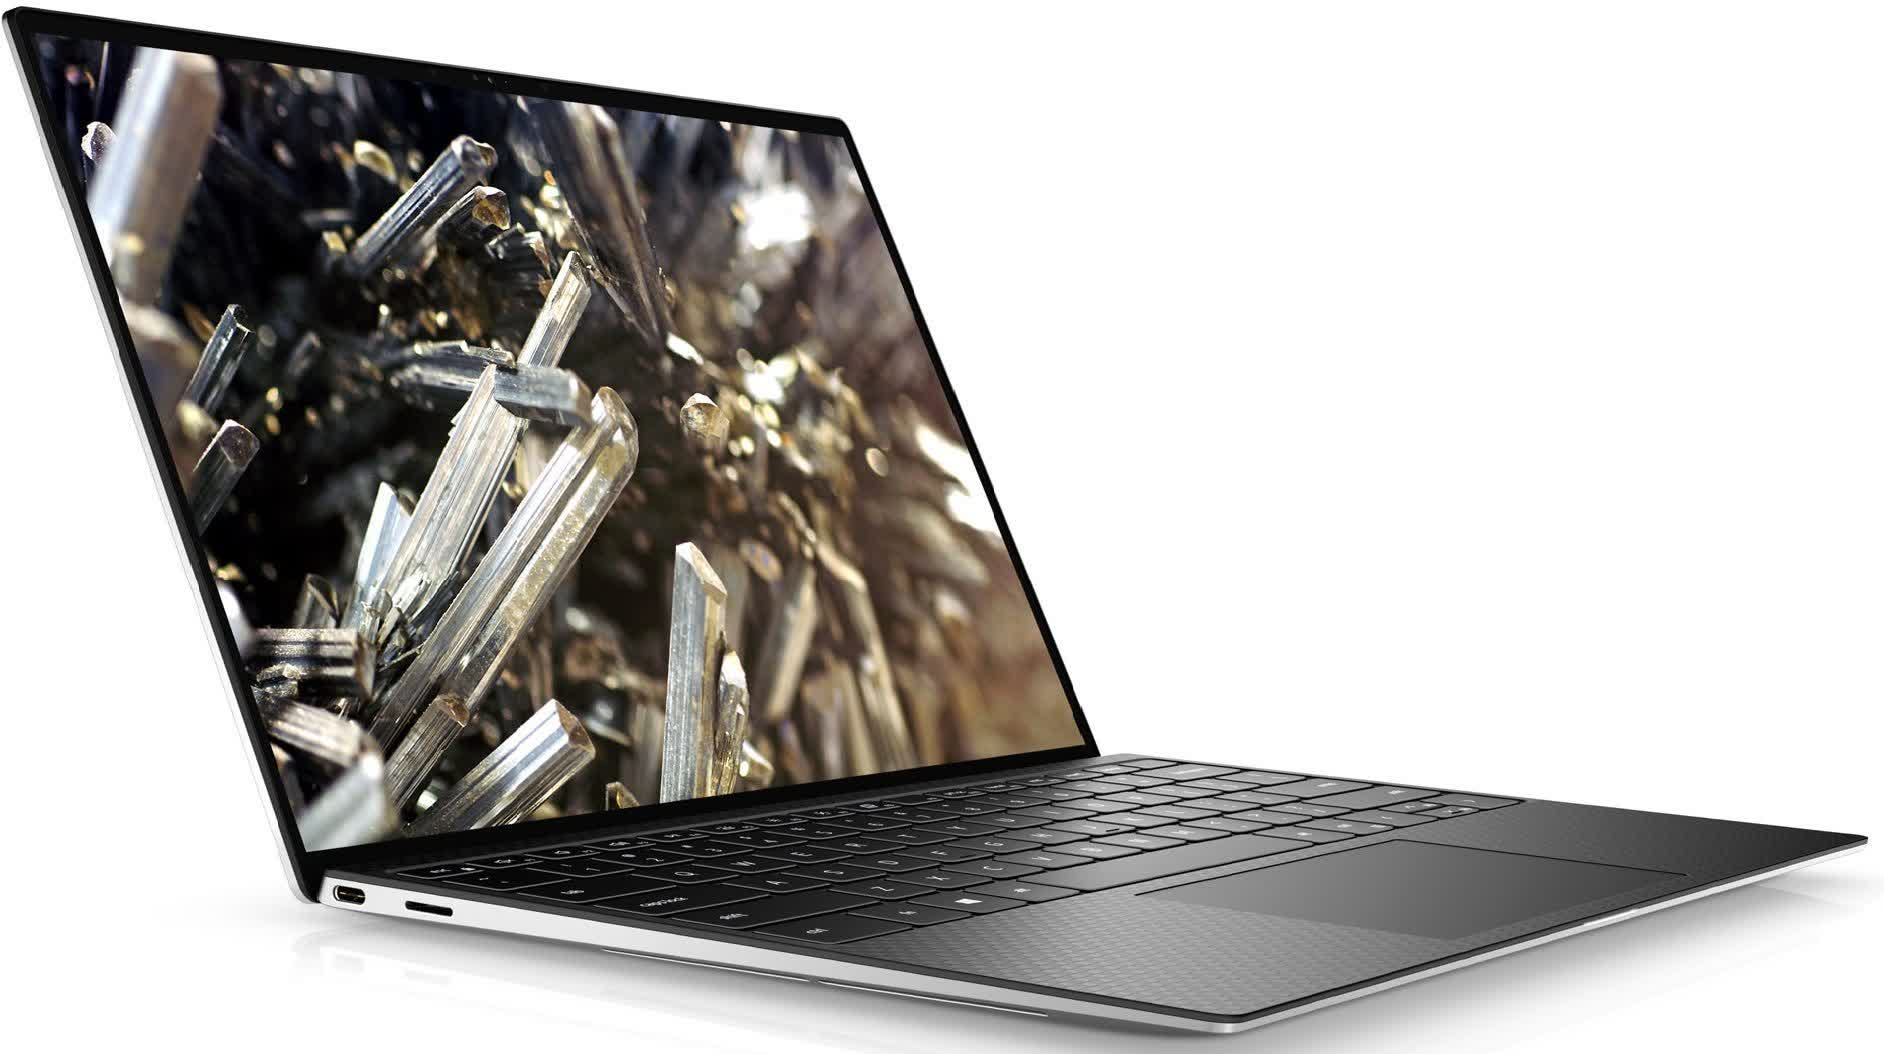 Dell XPS 13 (9300) - 2020